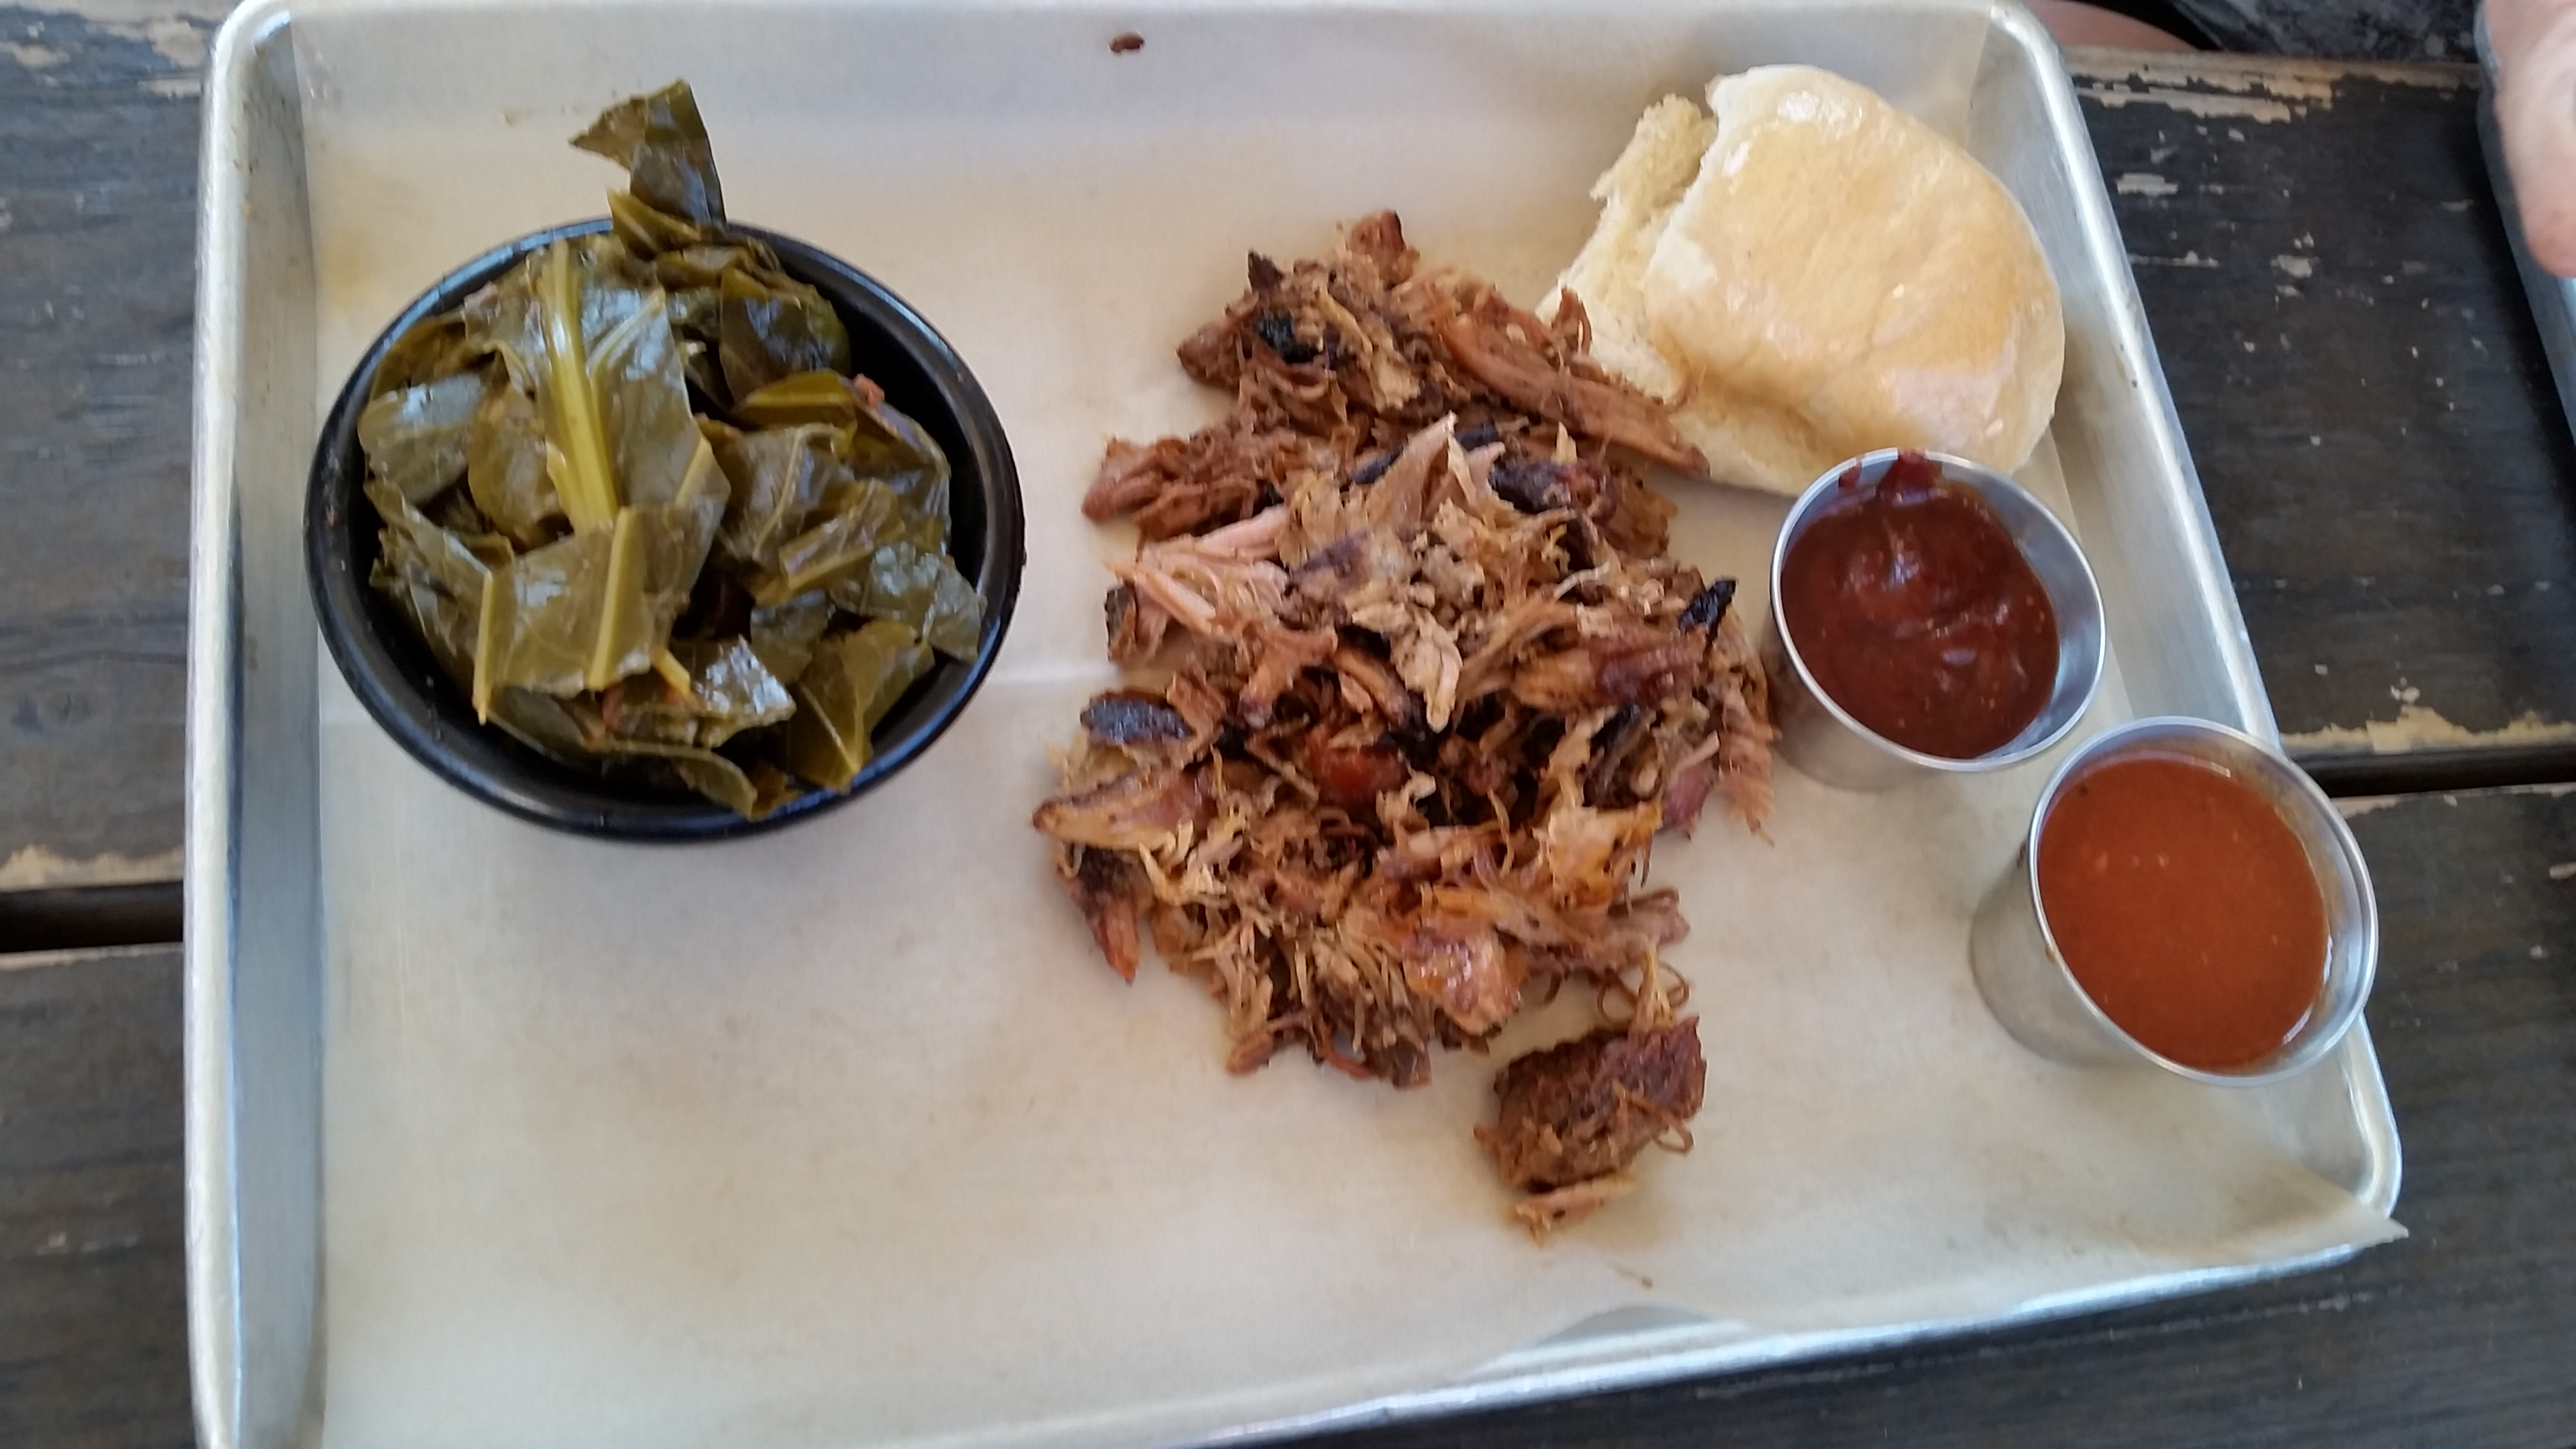 Collard Greens and Pulled Pork